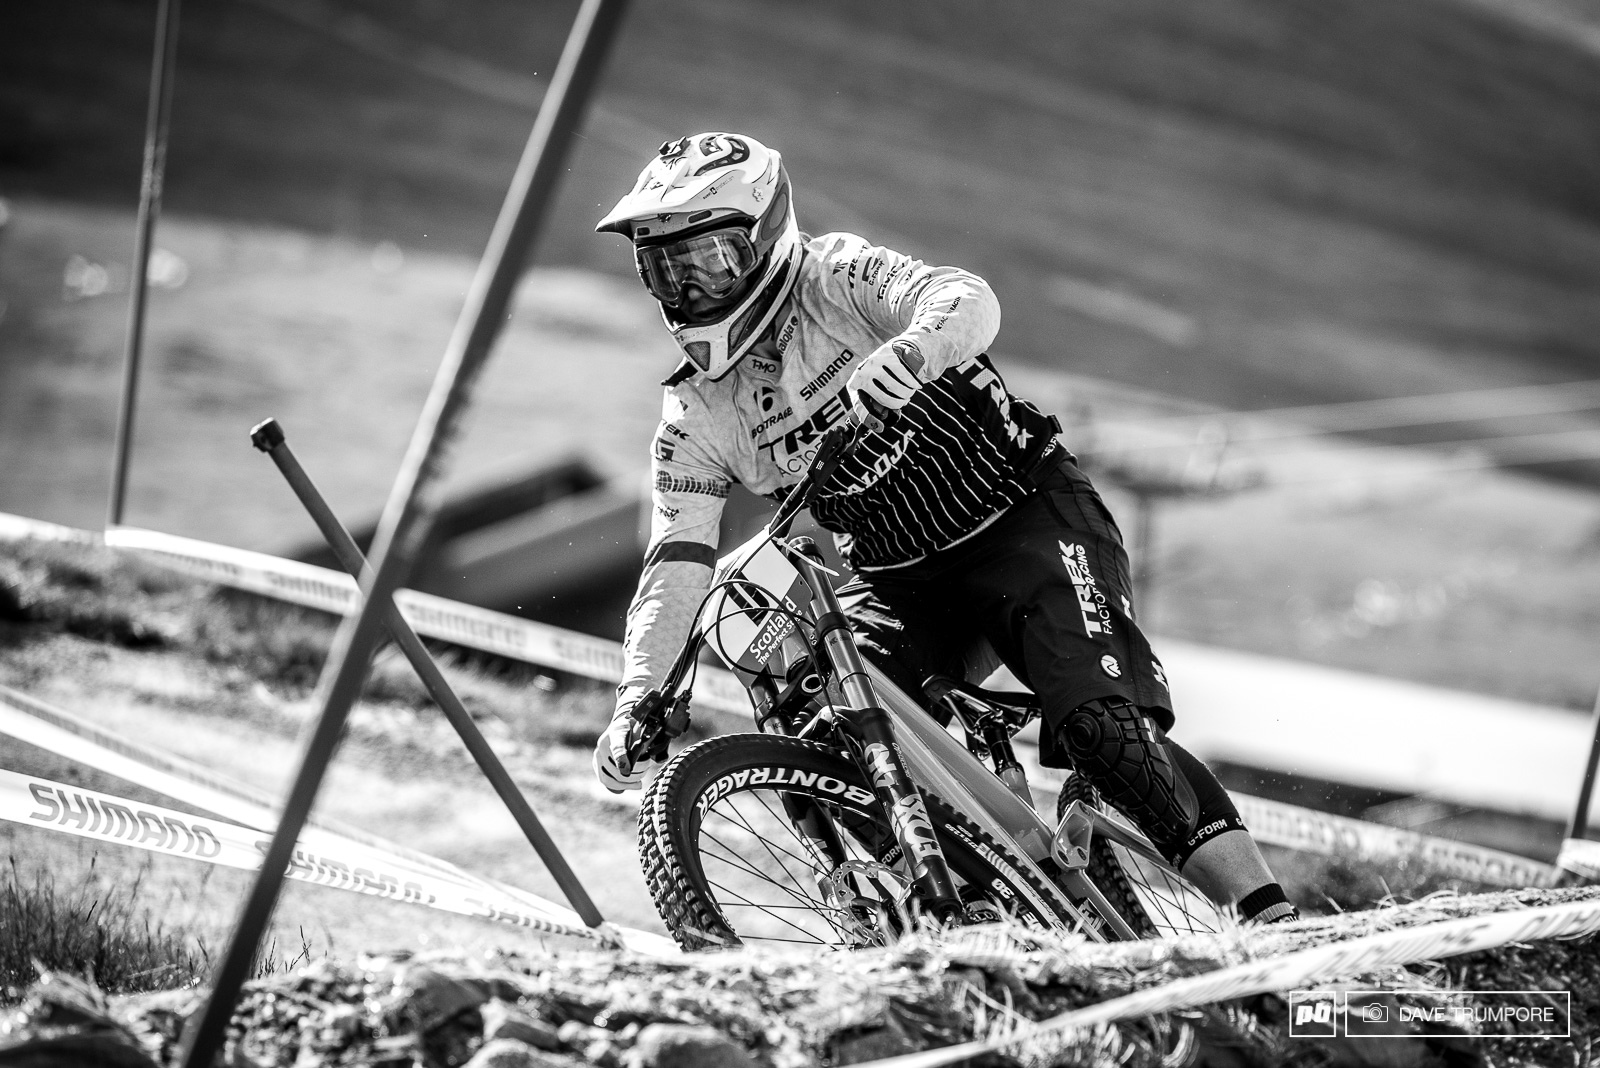 How long has it been since we ve seen Tracy Moseley on a DH bike and speeding down Aonach Mor. While not racing this weekend she is one of the forerunners and could be seen getting a few laps in amongst the other women in the morning.